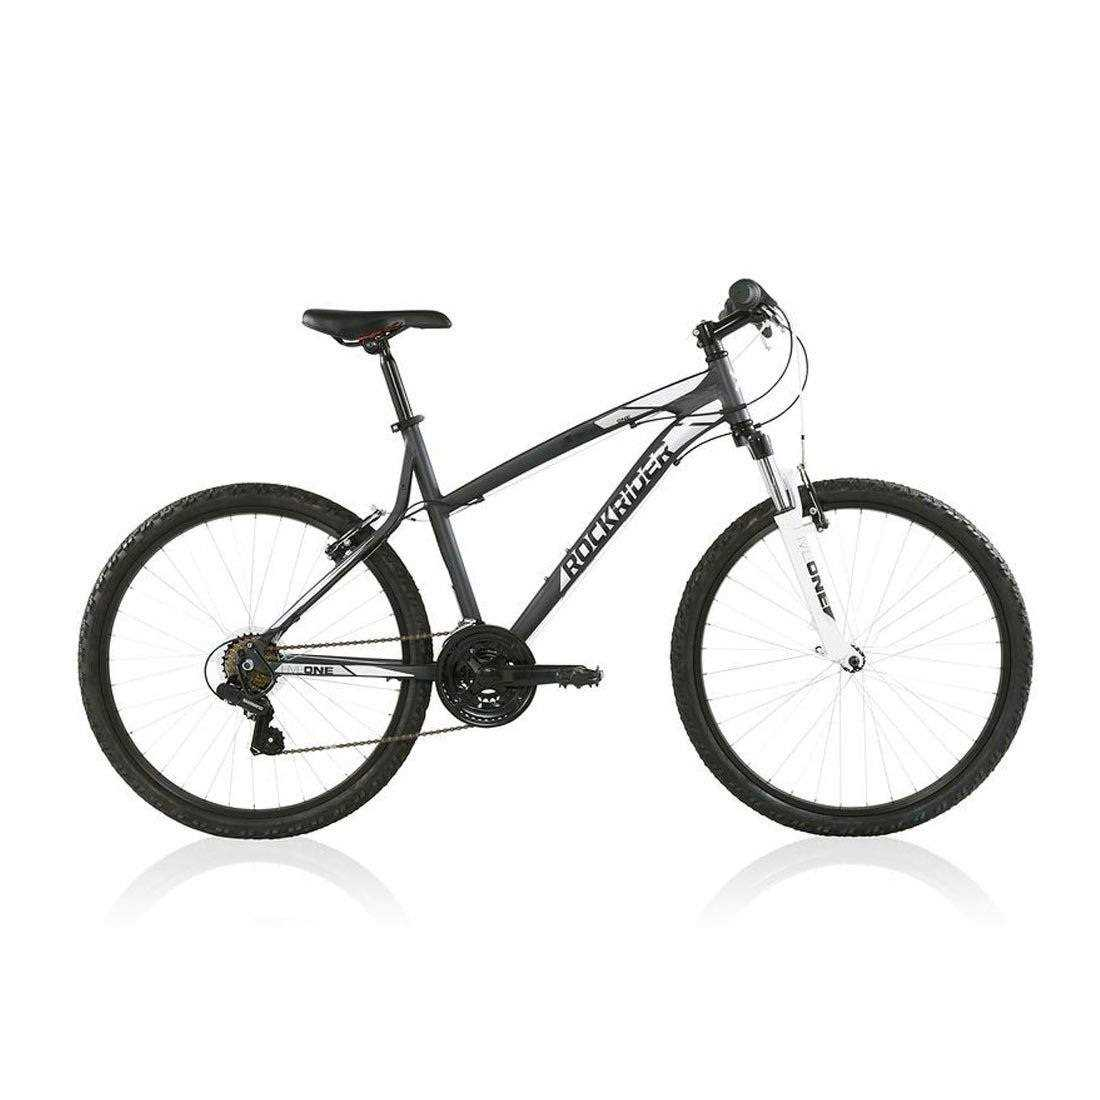 1204693c9 Btwin Rockrider 340 Mountain Bike Price  25 May 2019